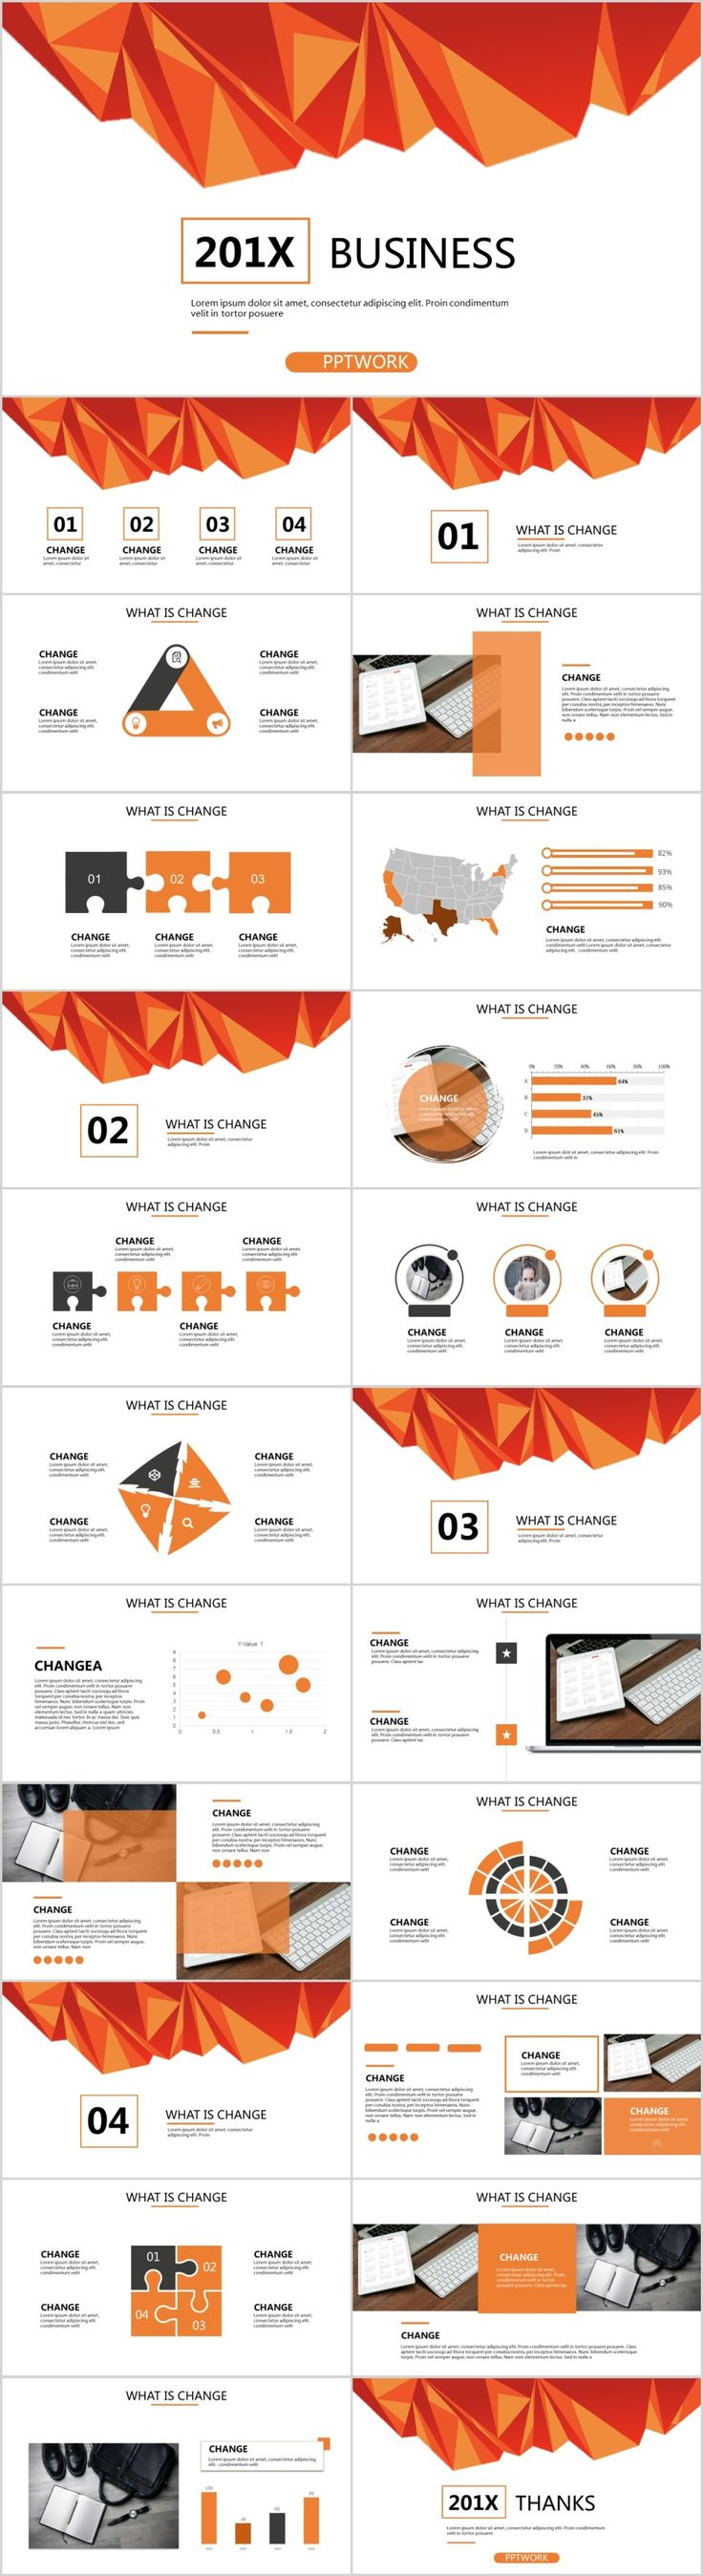 Business infographic 23 company business report powerpoint description 23 company business report powerpoint template toneelgroepblik Image collections